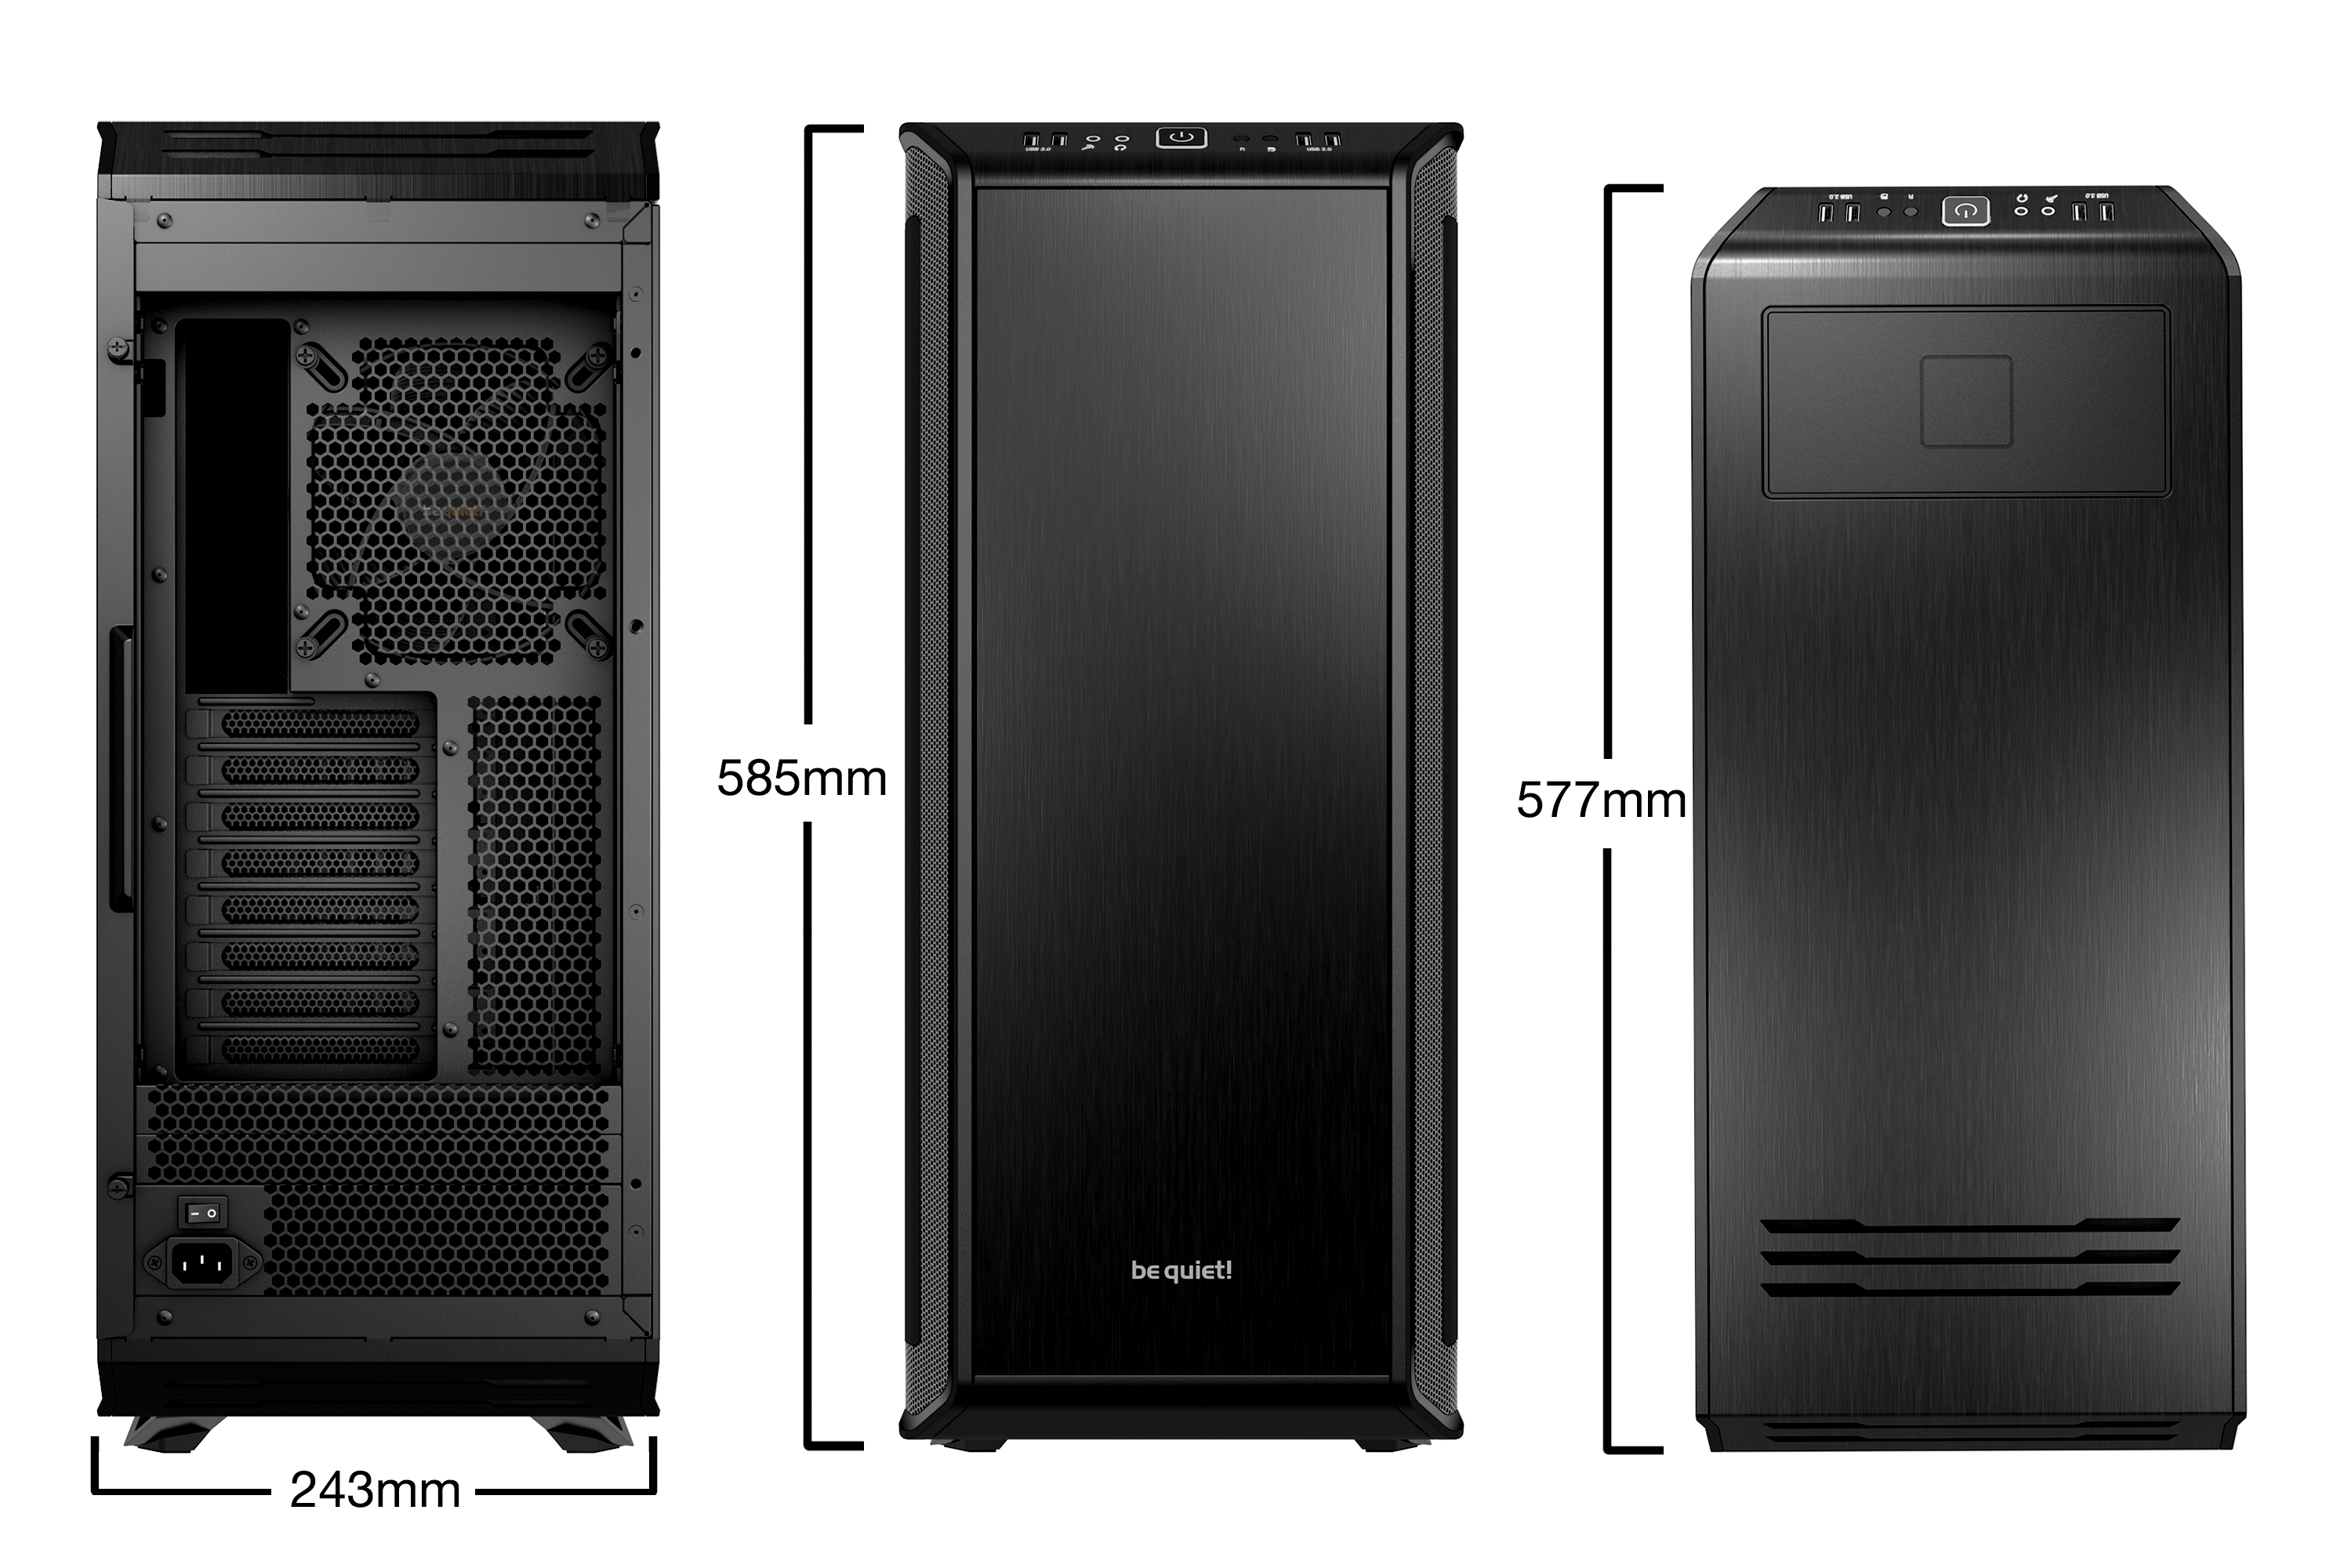 be quiet! Dark Base Pro 900 Window Black, 577 x 243 x 585, IO-panel 2x USB 3.0, 2x USB 2.0, HD Audio, 2x 5,25, 7x 3,5, 15x 2,5, inc 3x 140 mm, tripple air channel cooling, Manual fan controller, 4xPWM, 4x3pin, QI Charging, RGB LED